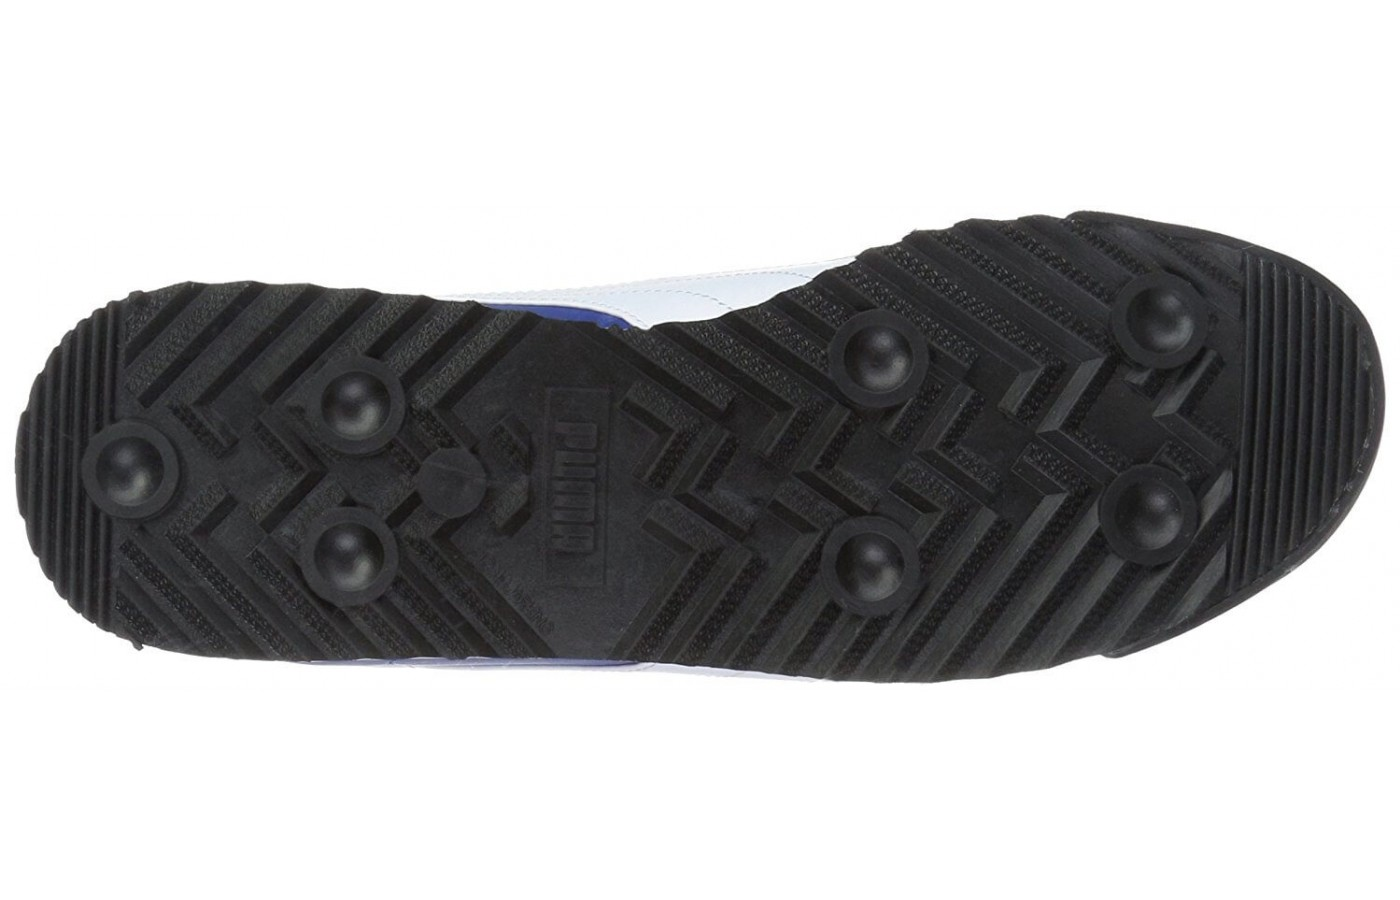 The Puma Roma has a rubber outsole